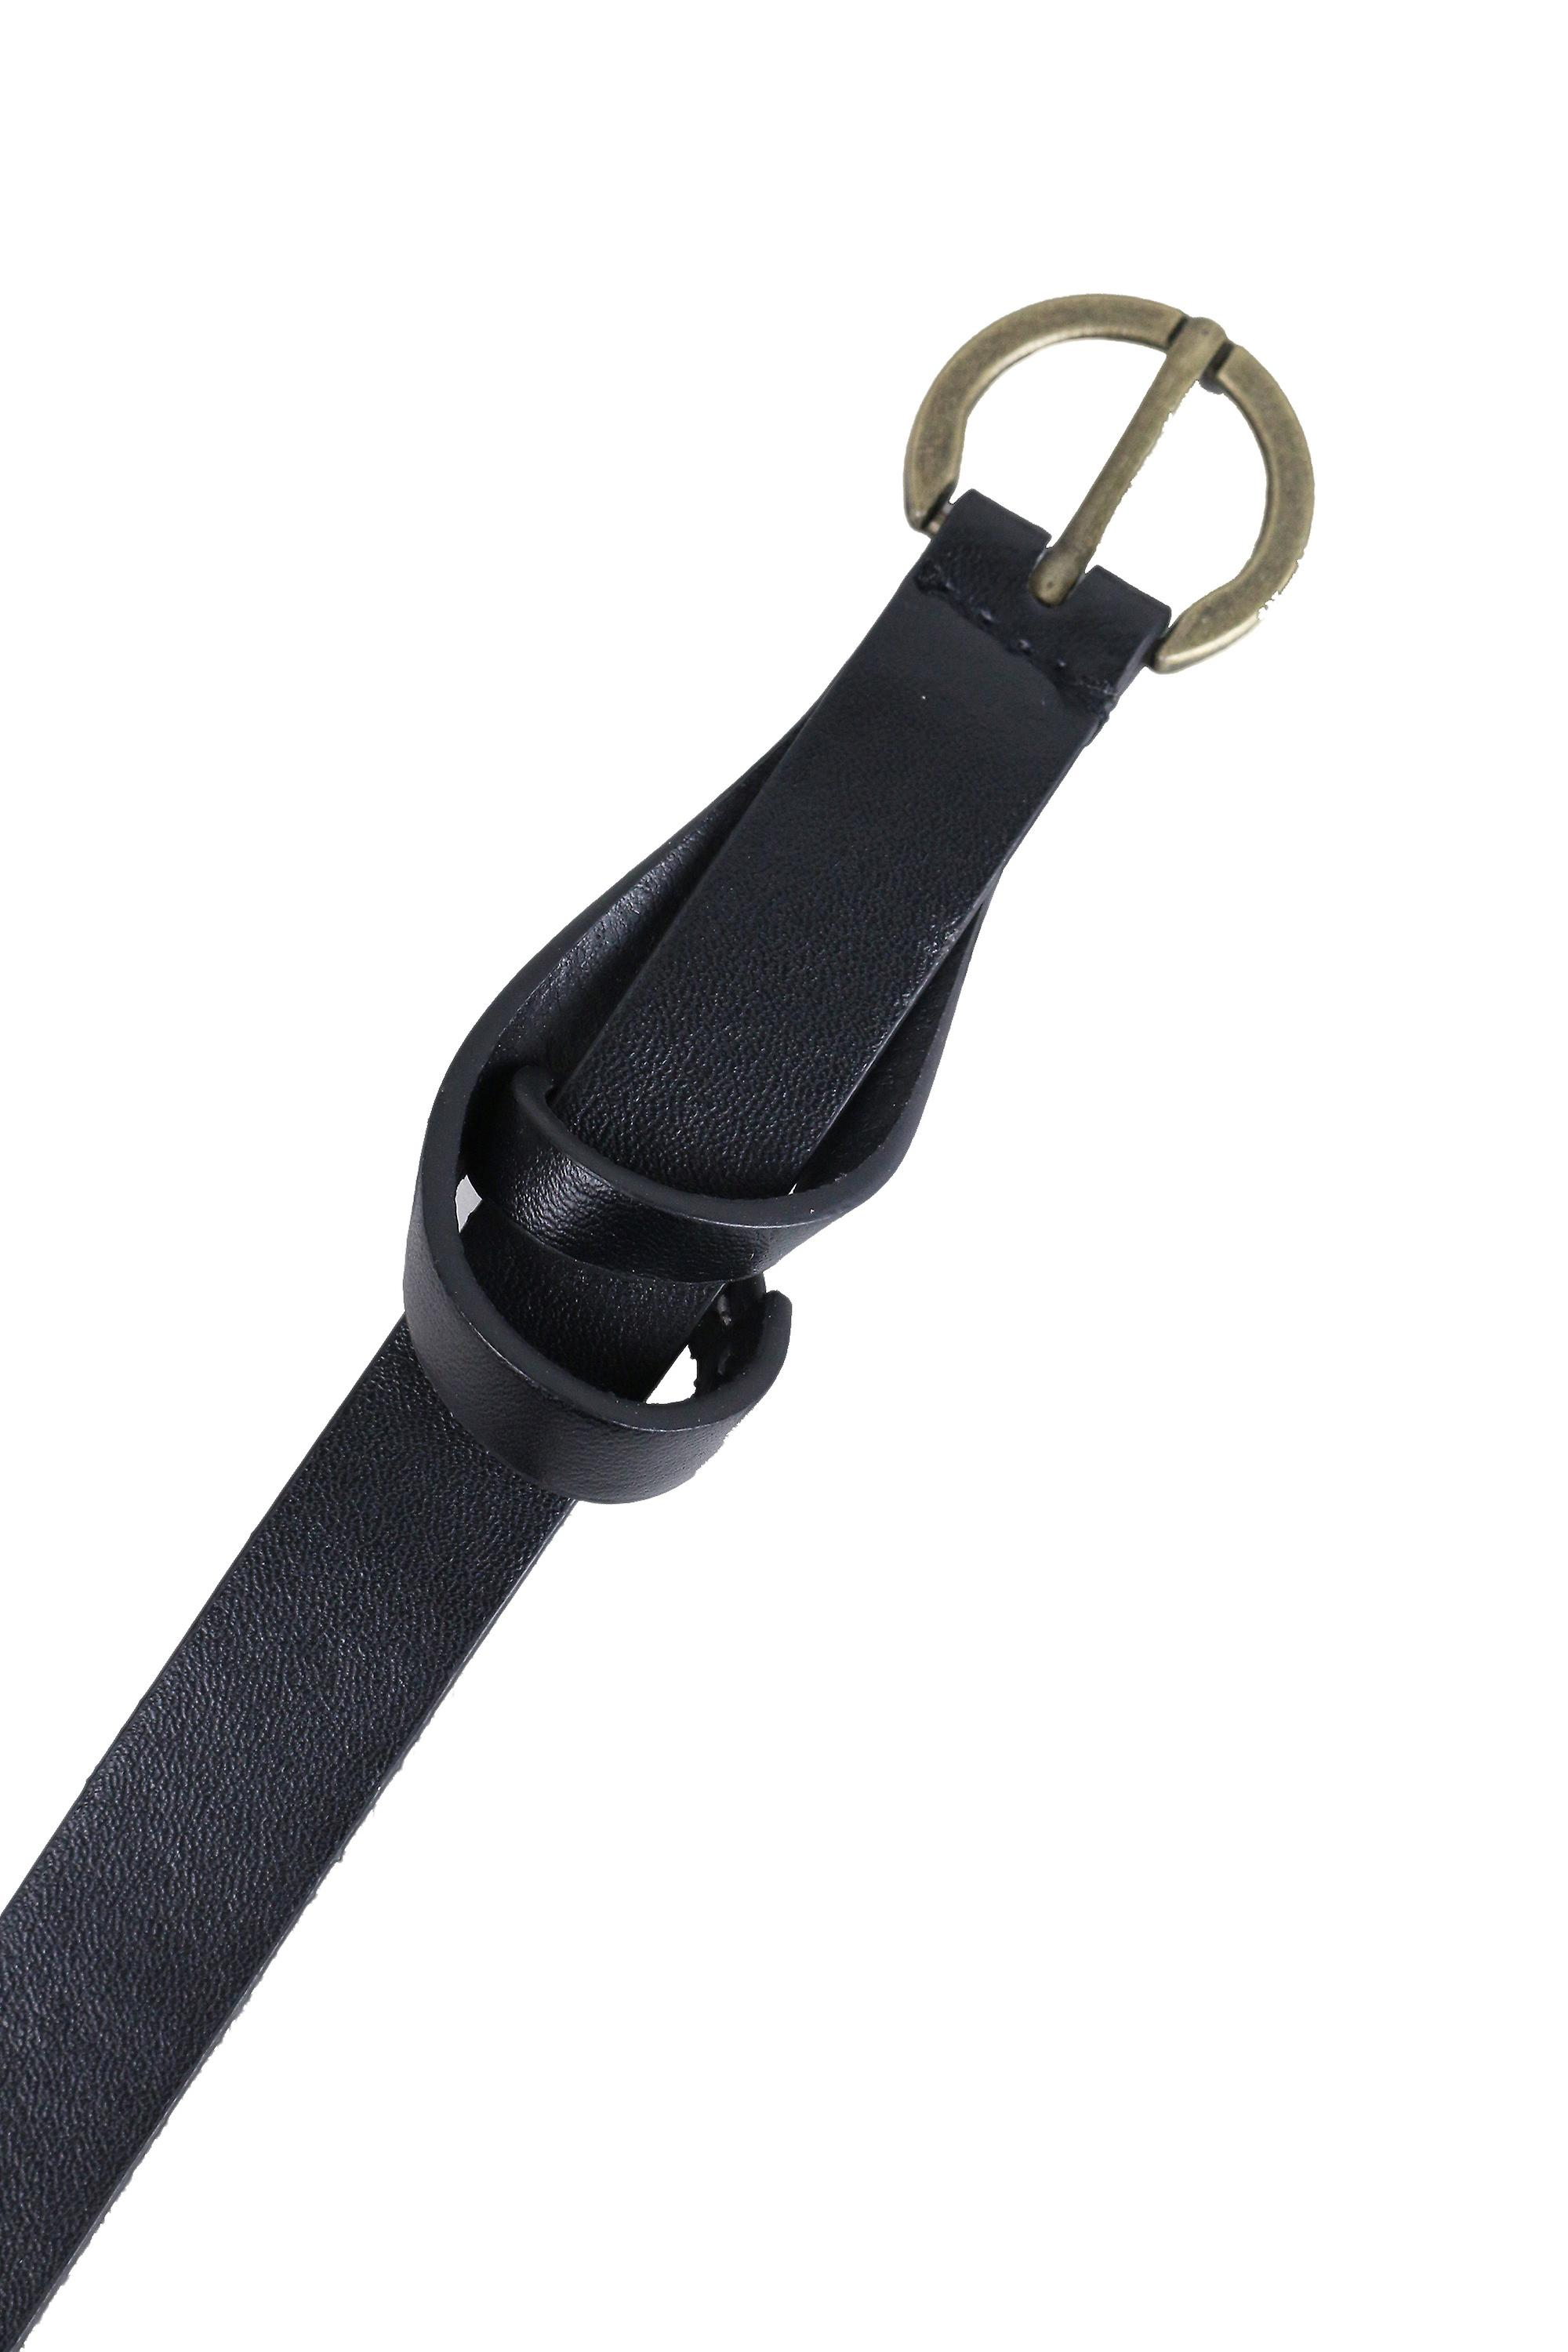 Lovemystyle Skinny Black Belt With Gold Round Buckle